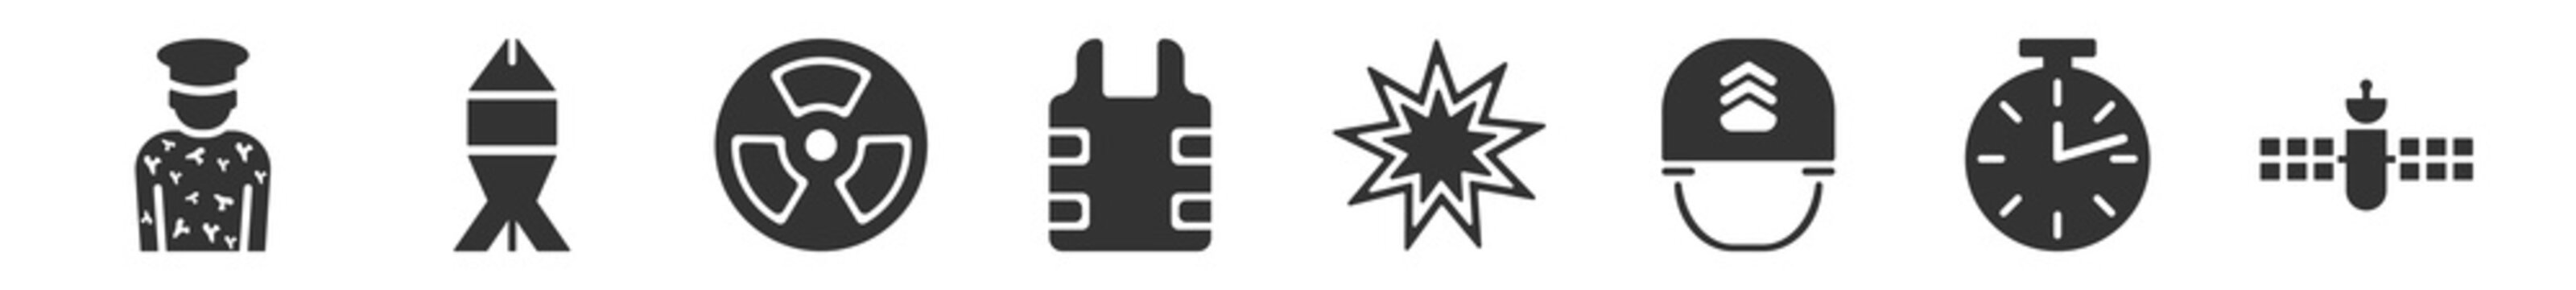 filled set of army icons. glyph vector icons such as conscription, depth charge, nuclear, bulletproof, explosion, military satellites. vector illustration.